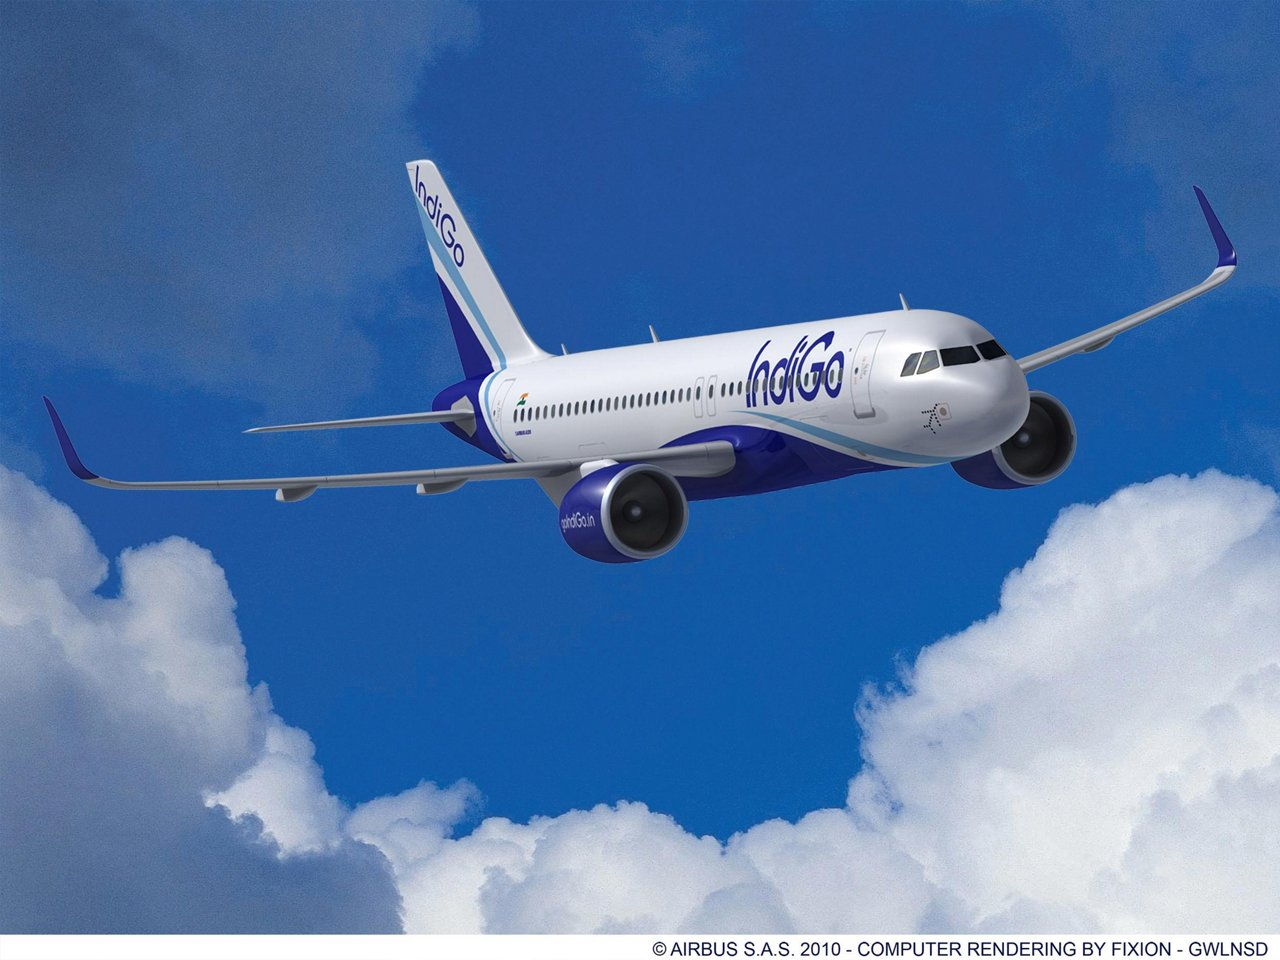 IndiGo celebrated its ninth birthday by firming up an order for 250 Airbus A320neo (new engine option) jetliners, with this historic purchase agreement inked on the 69th Independence Day of India (15 August 2015)